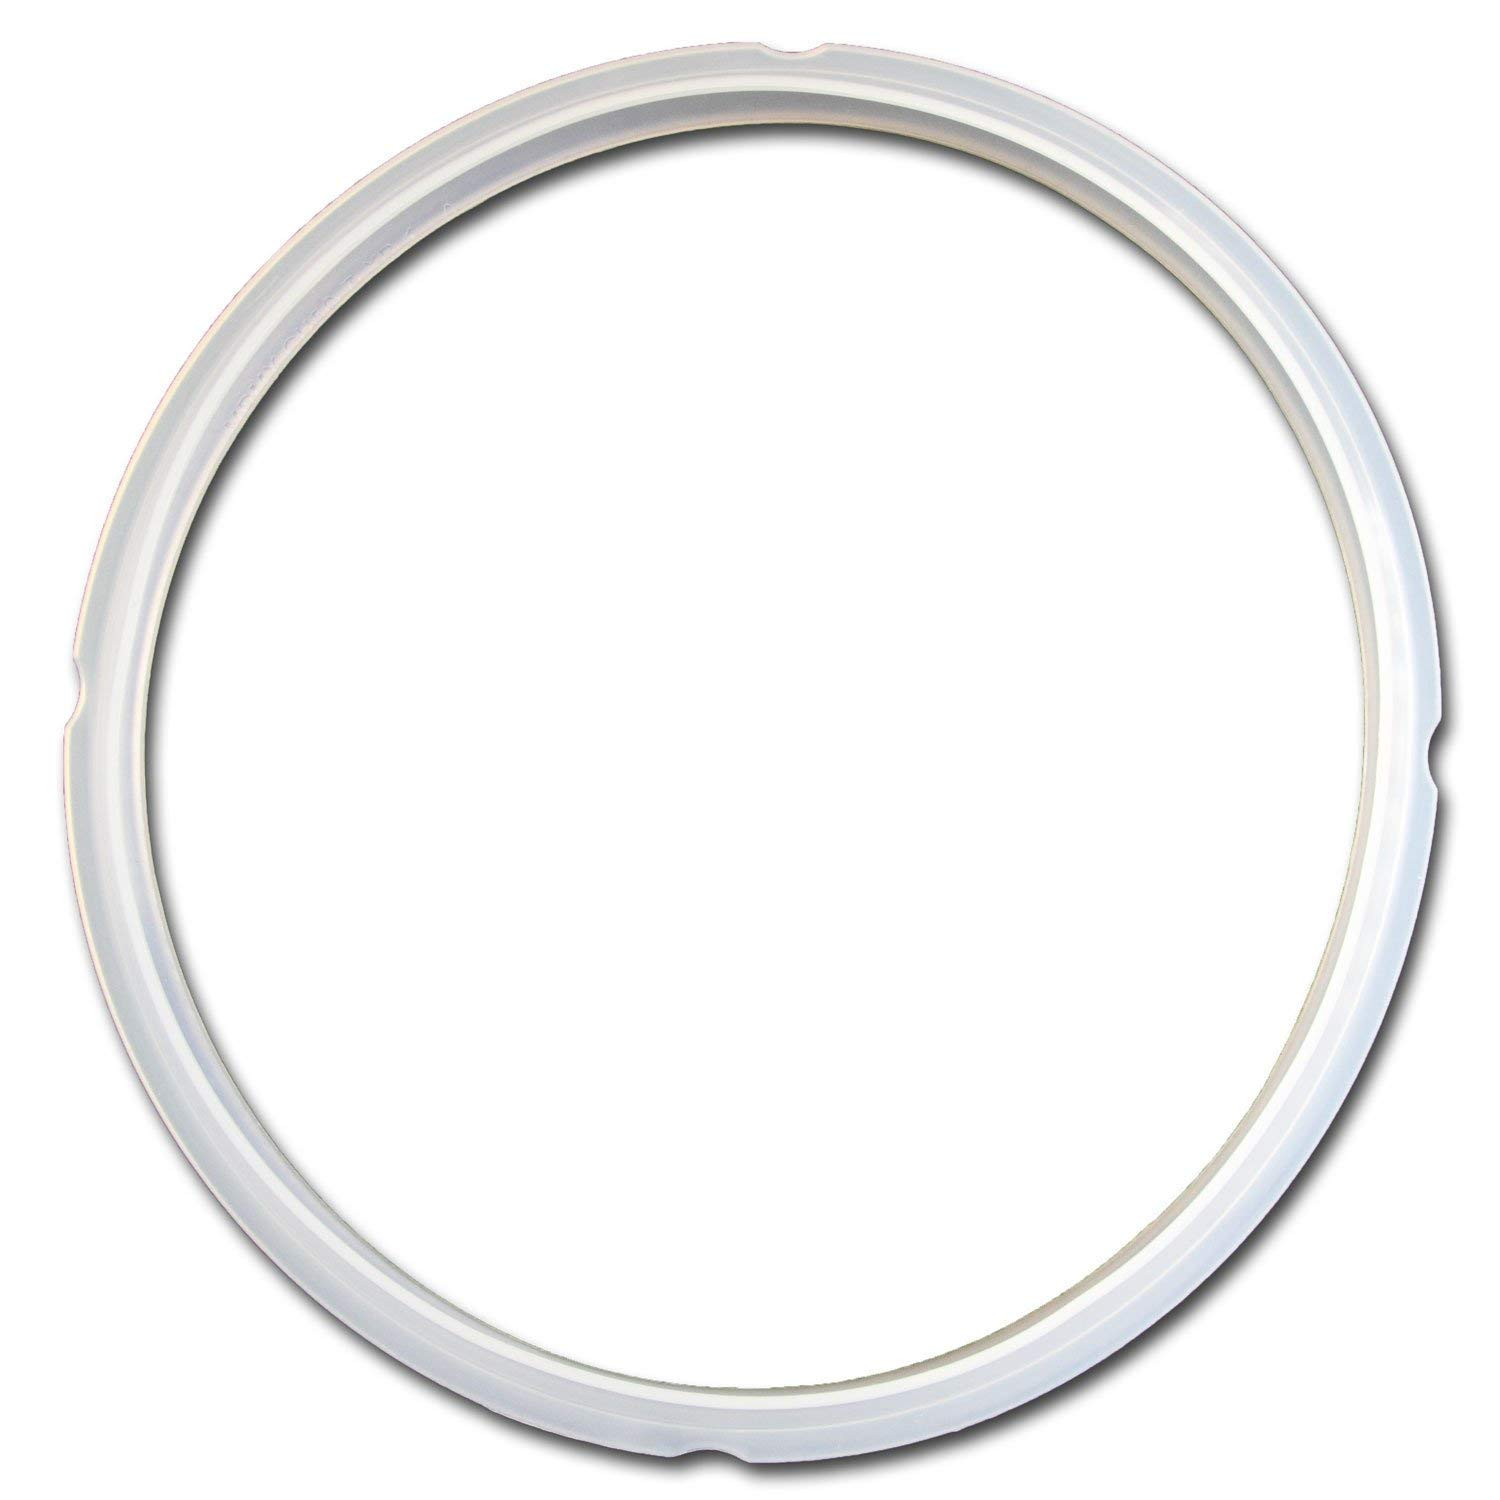 Electric Pressure Cooker Sealing Ring or Seal Ring or Rubber Gasket or Sealing Gasket- For Many 8 Liter or 8 Quart Models